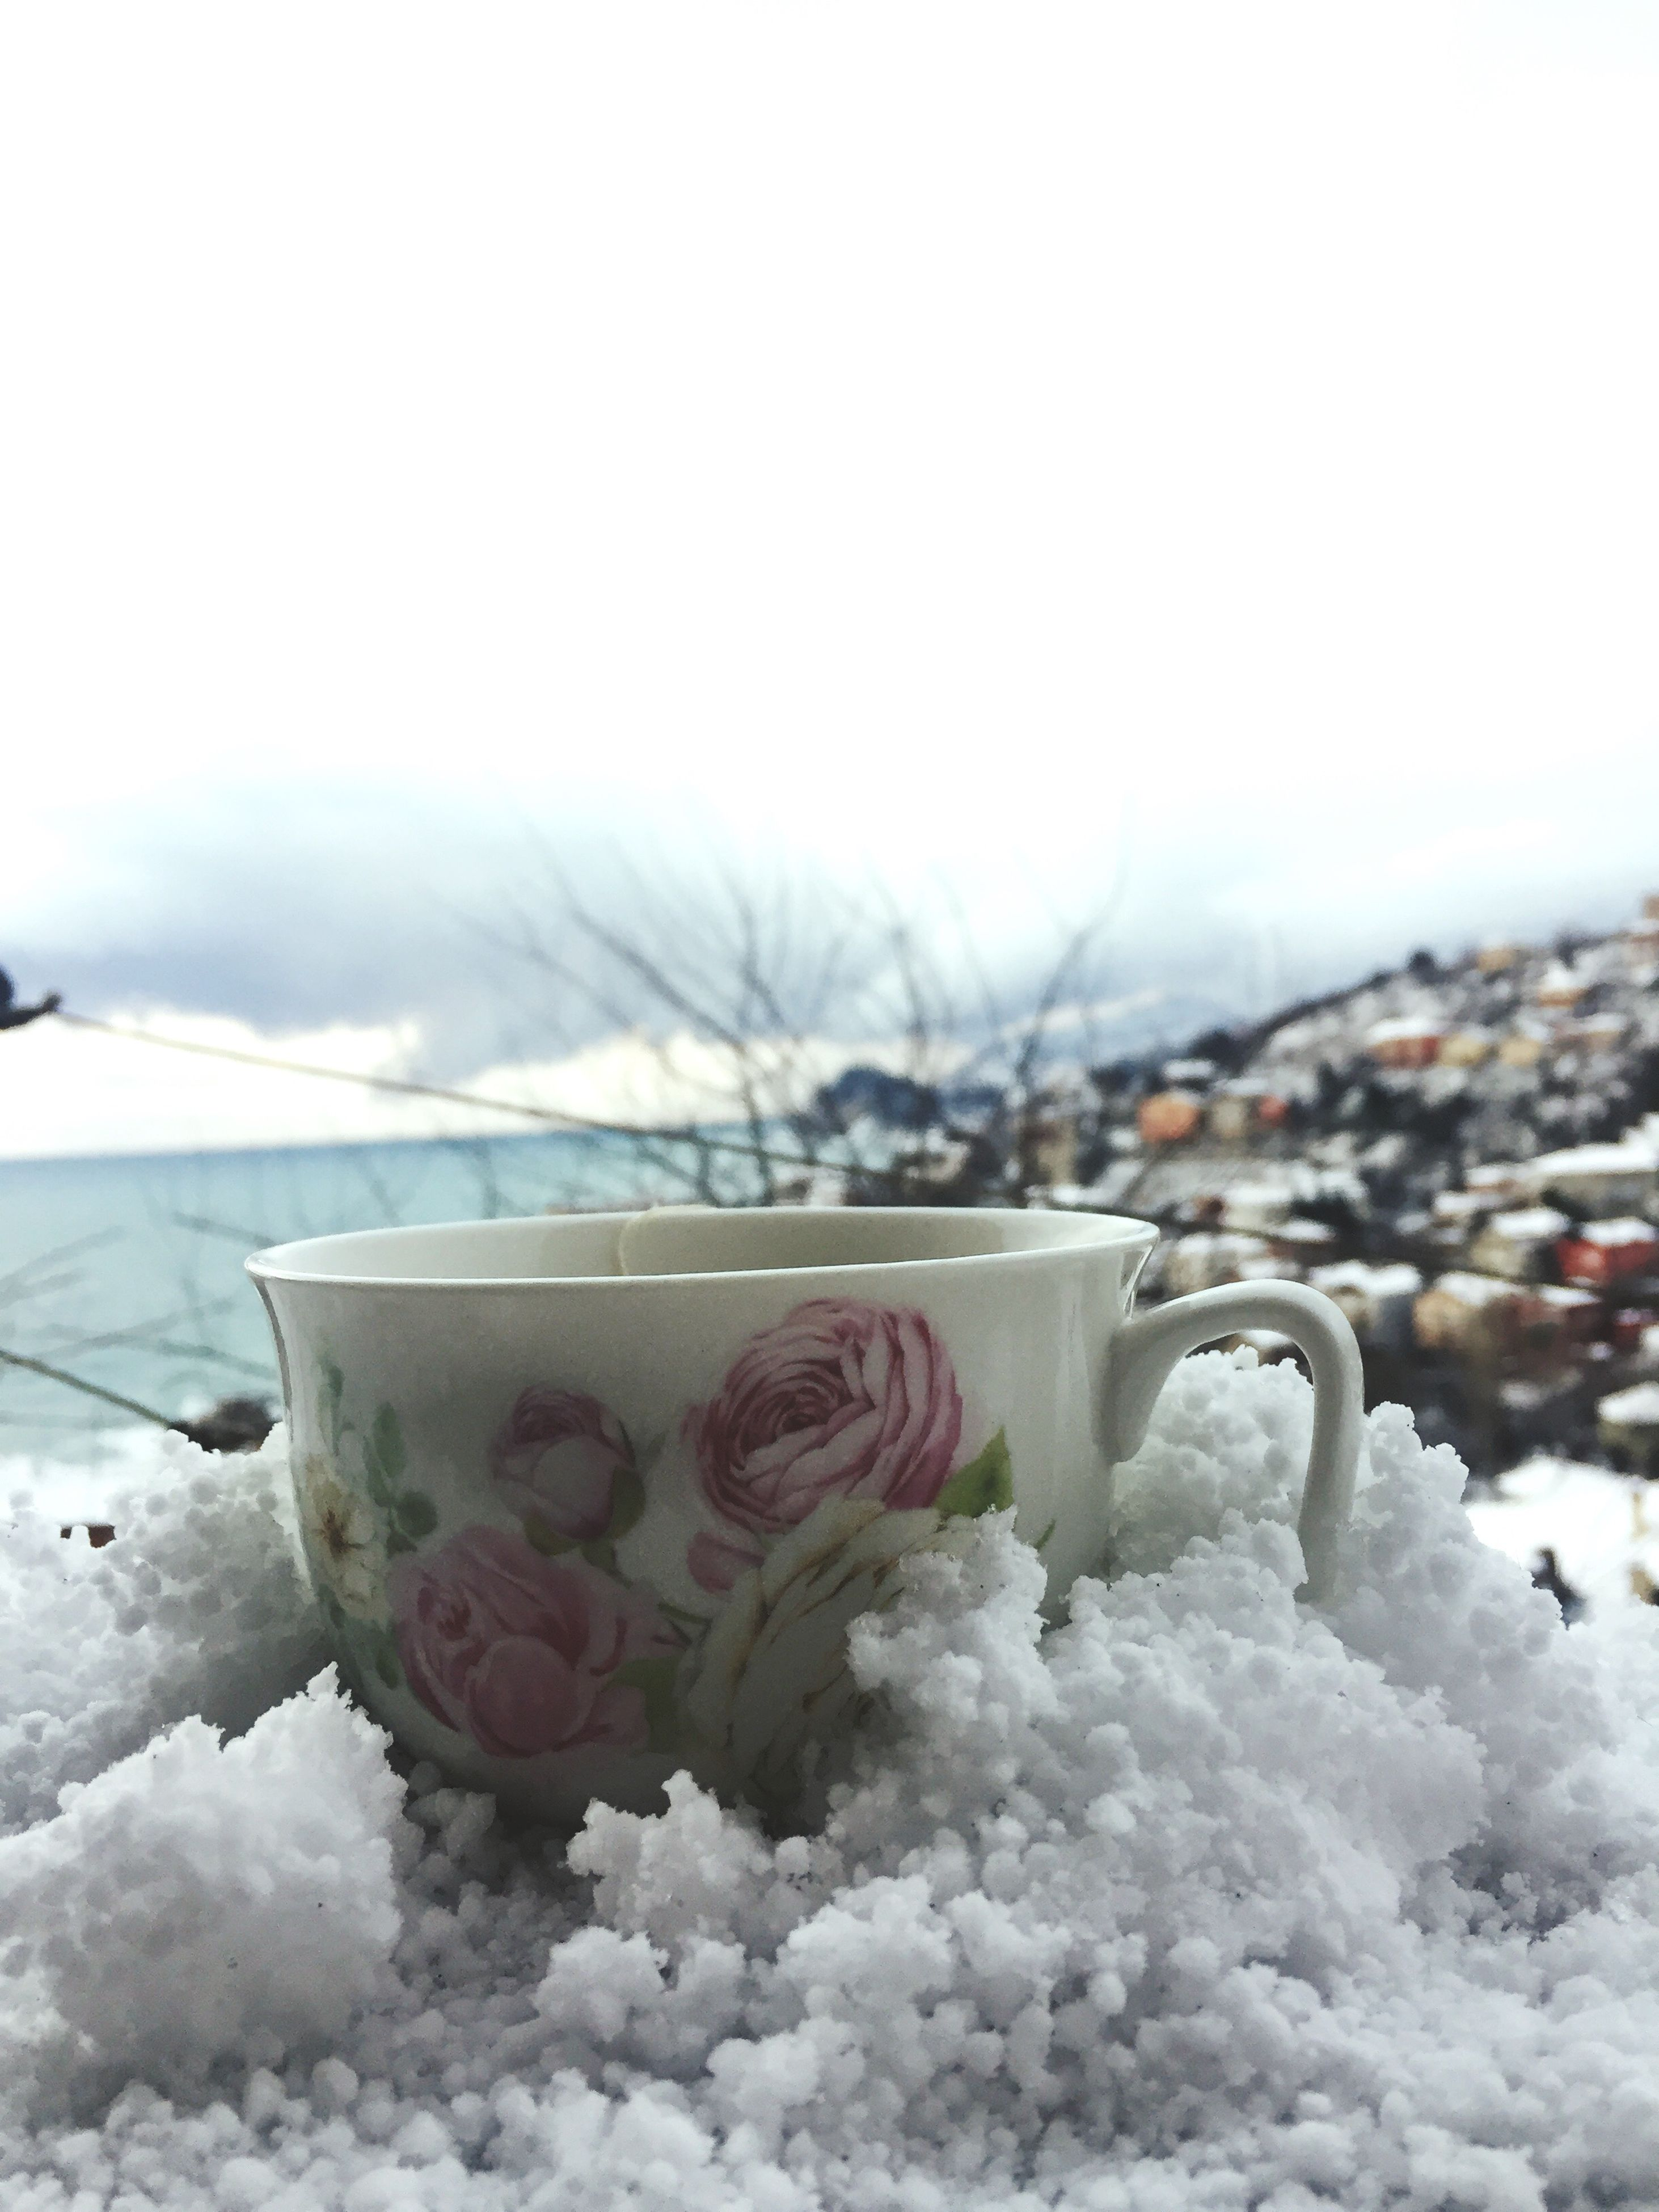 winter, snow, cold temperature, no people, nature, day, close-up, sky, outdoors, freshness